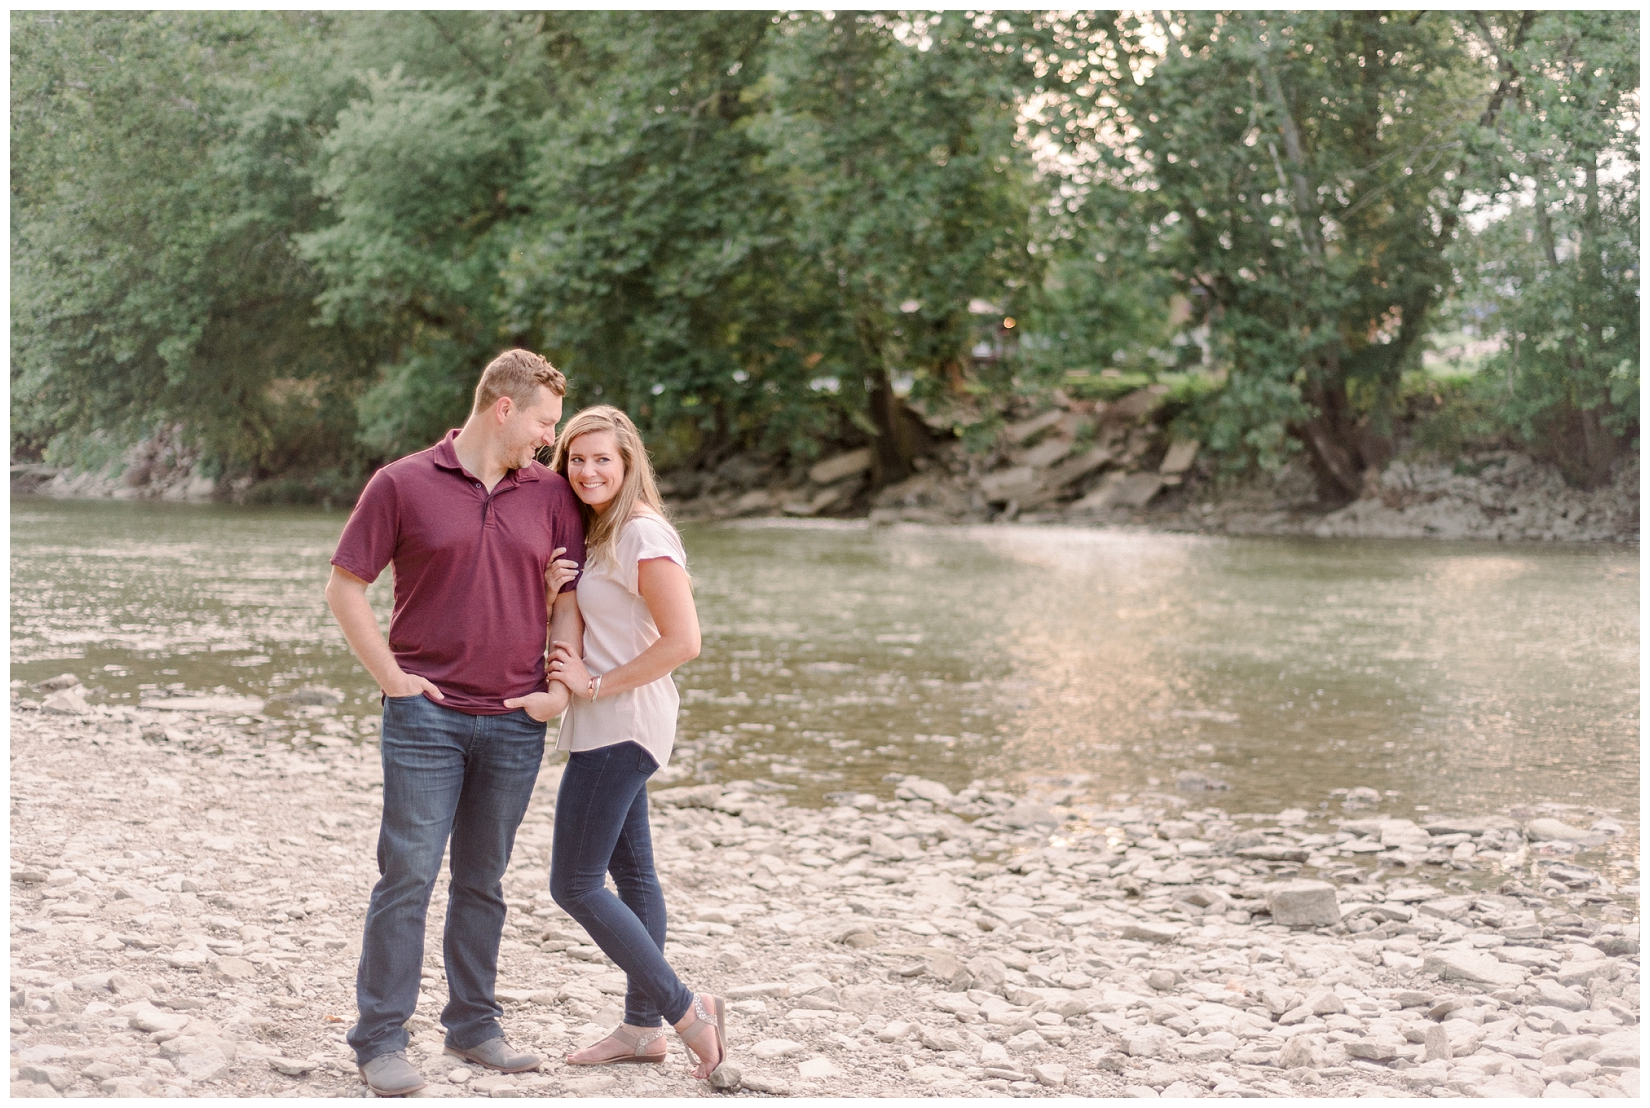 loveland engagement session 15.jpg